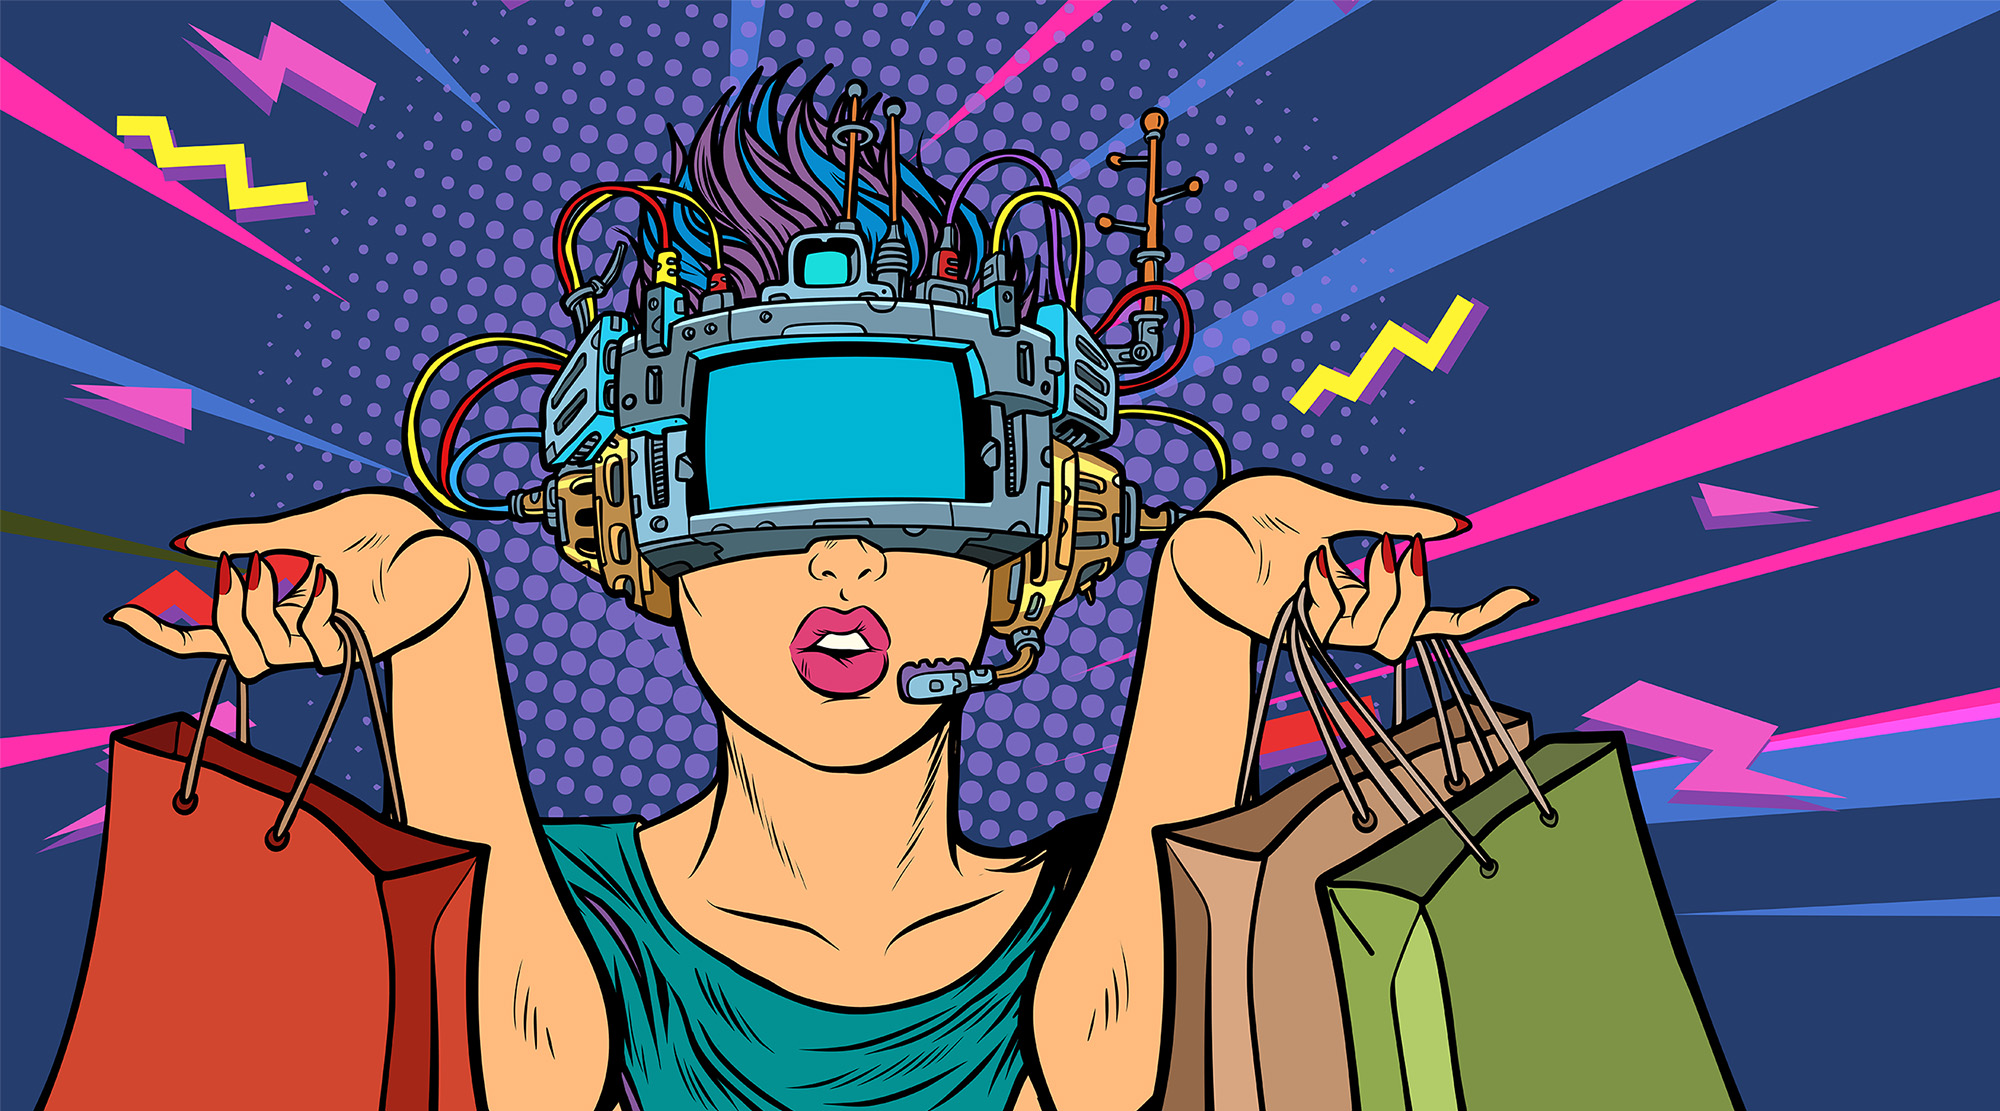 woman shopping on sale. virtual reality VR glasses. Pop art retro vector illustration vintage kitsch